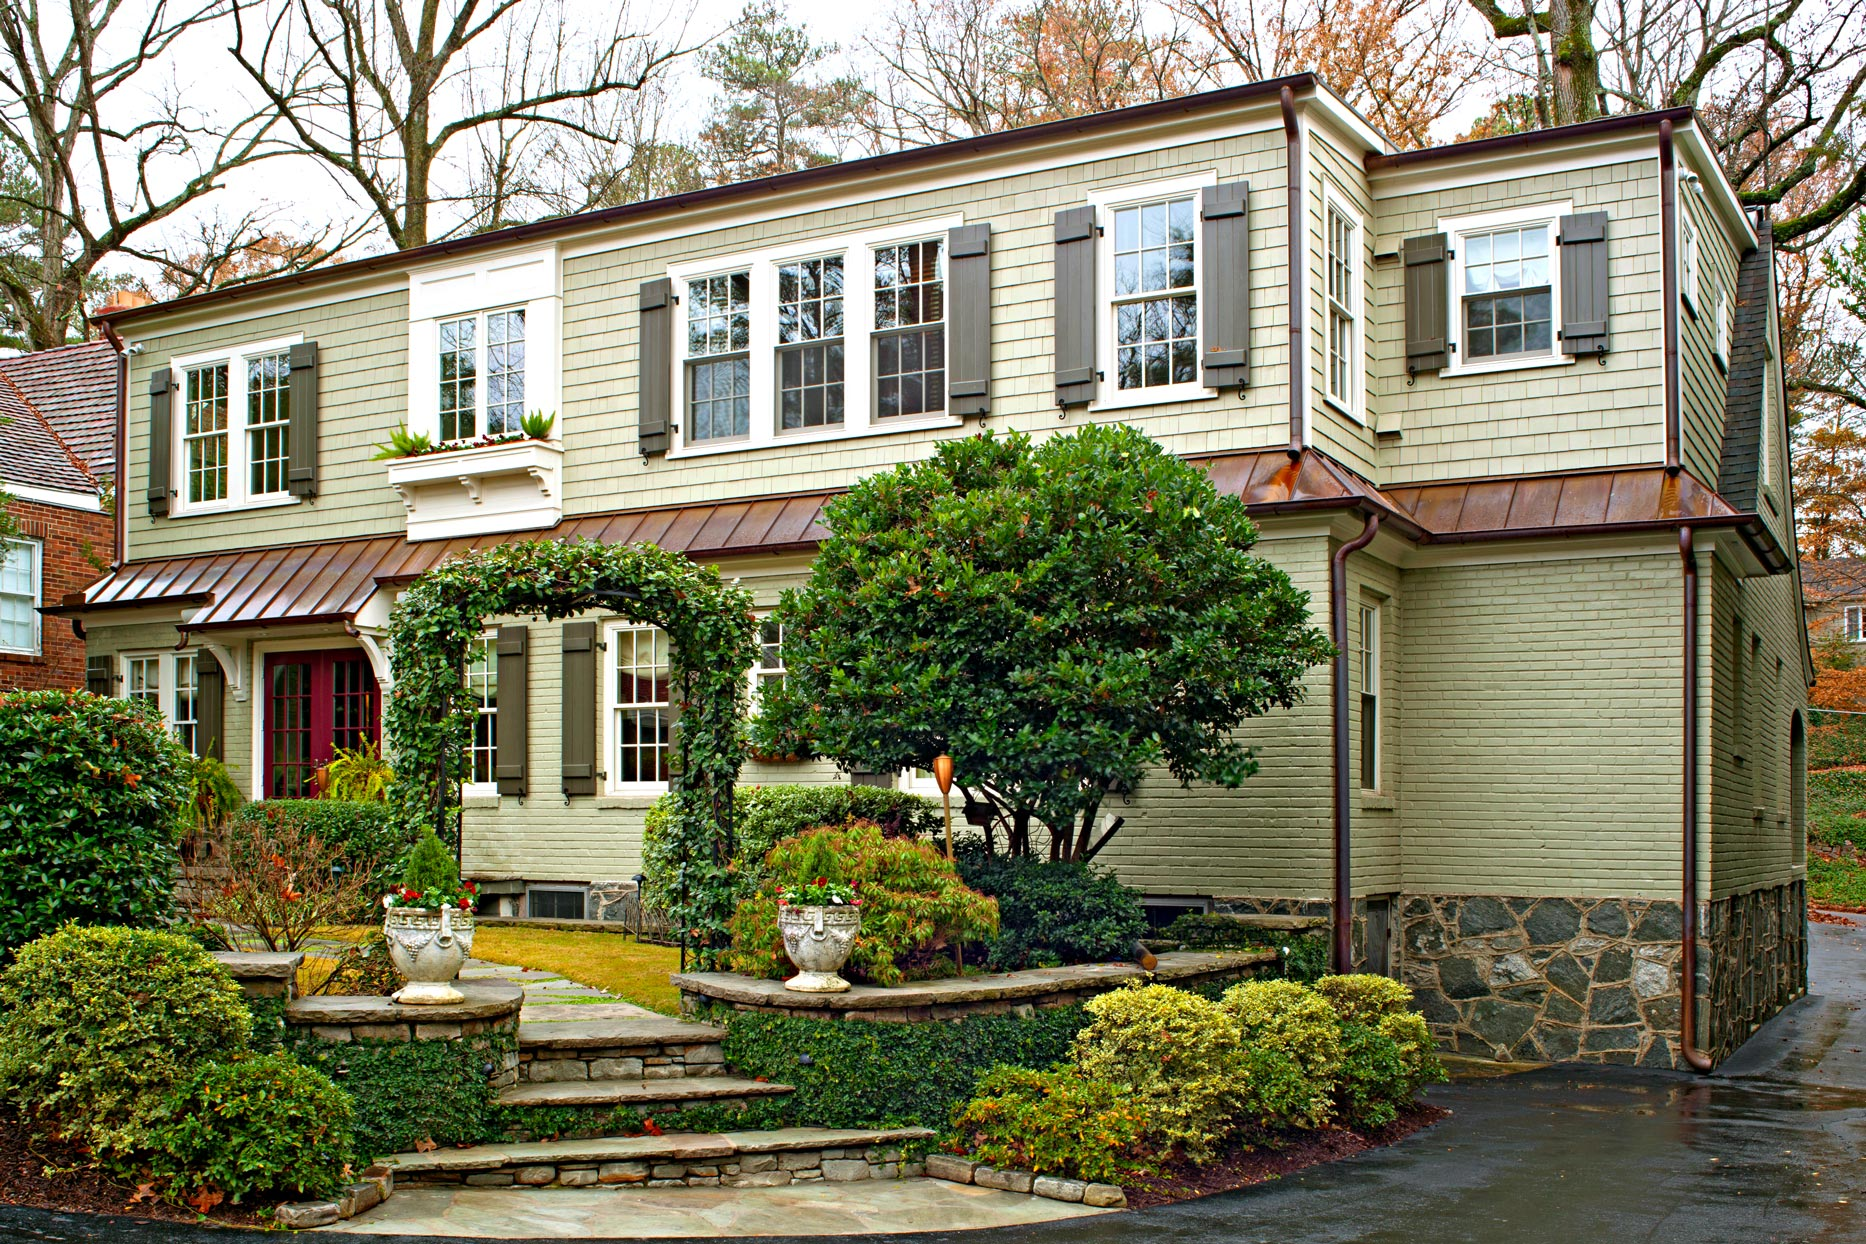 Curb Appeal in a Weekend: Add Shutters or Accent Trim